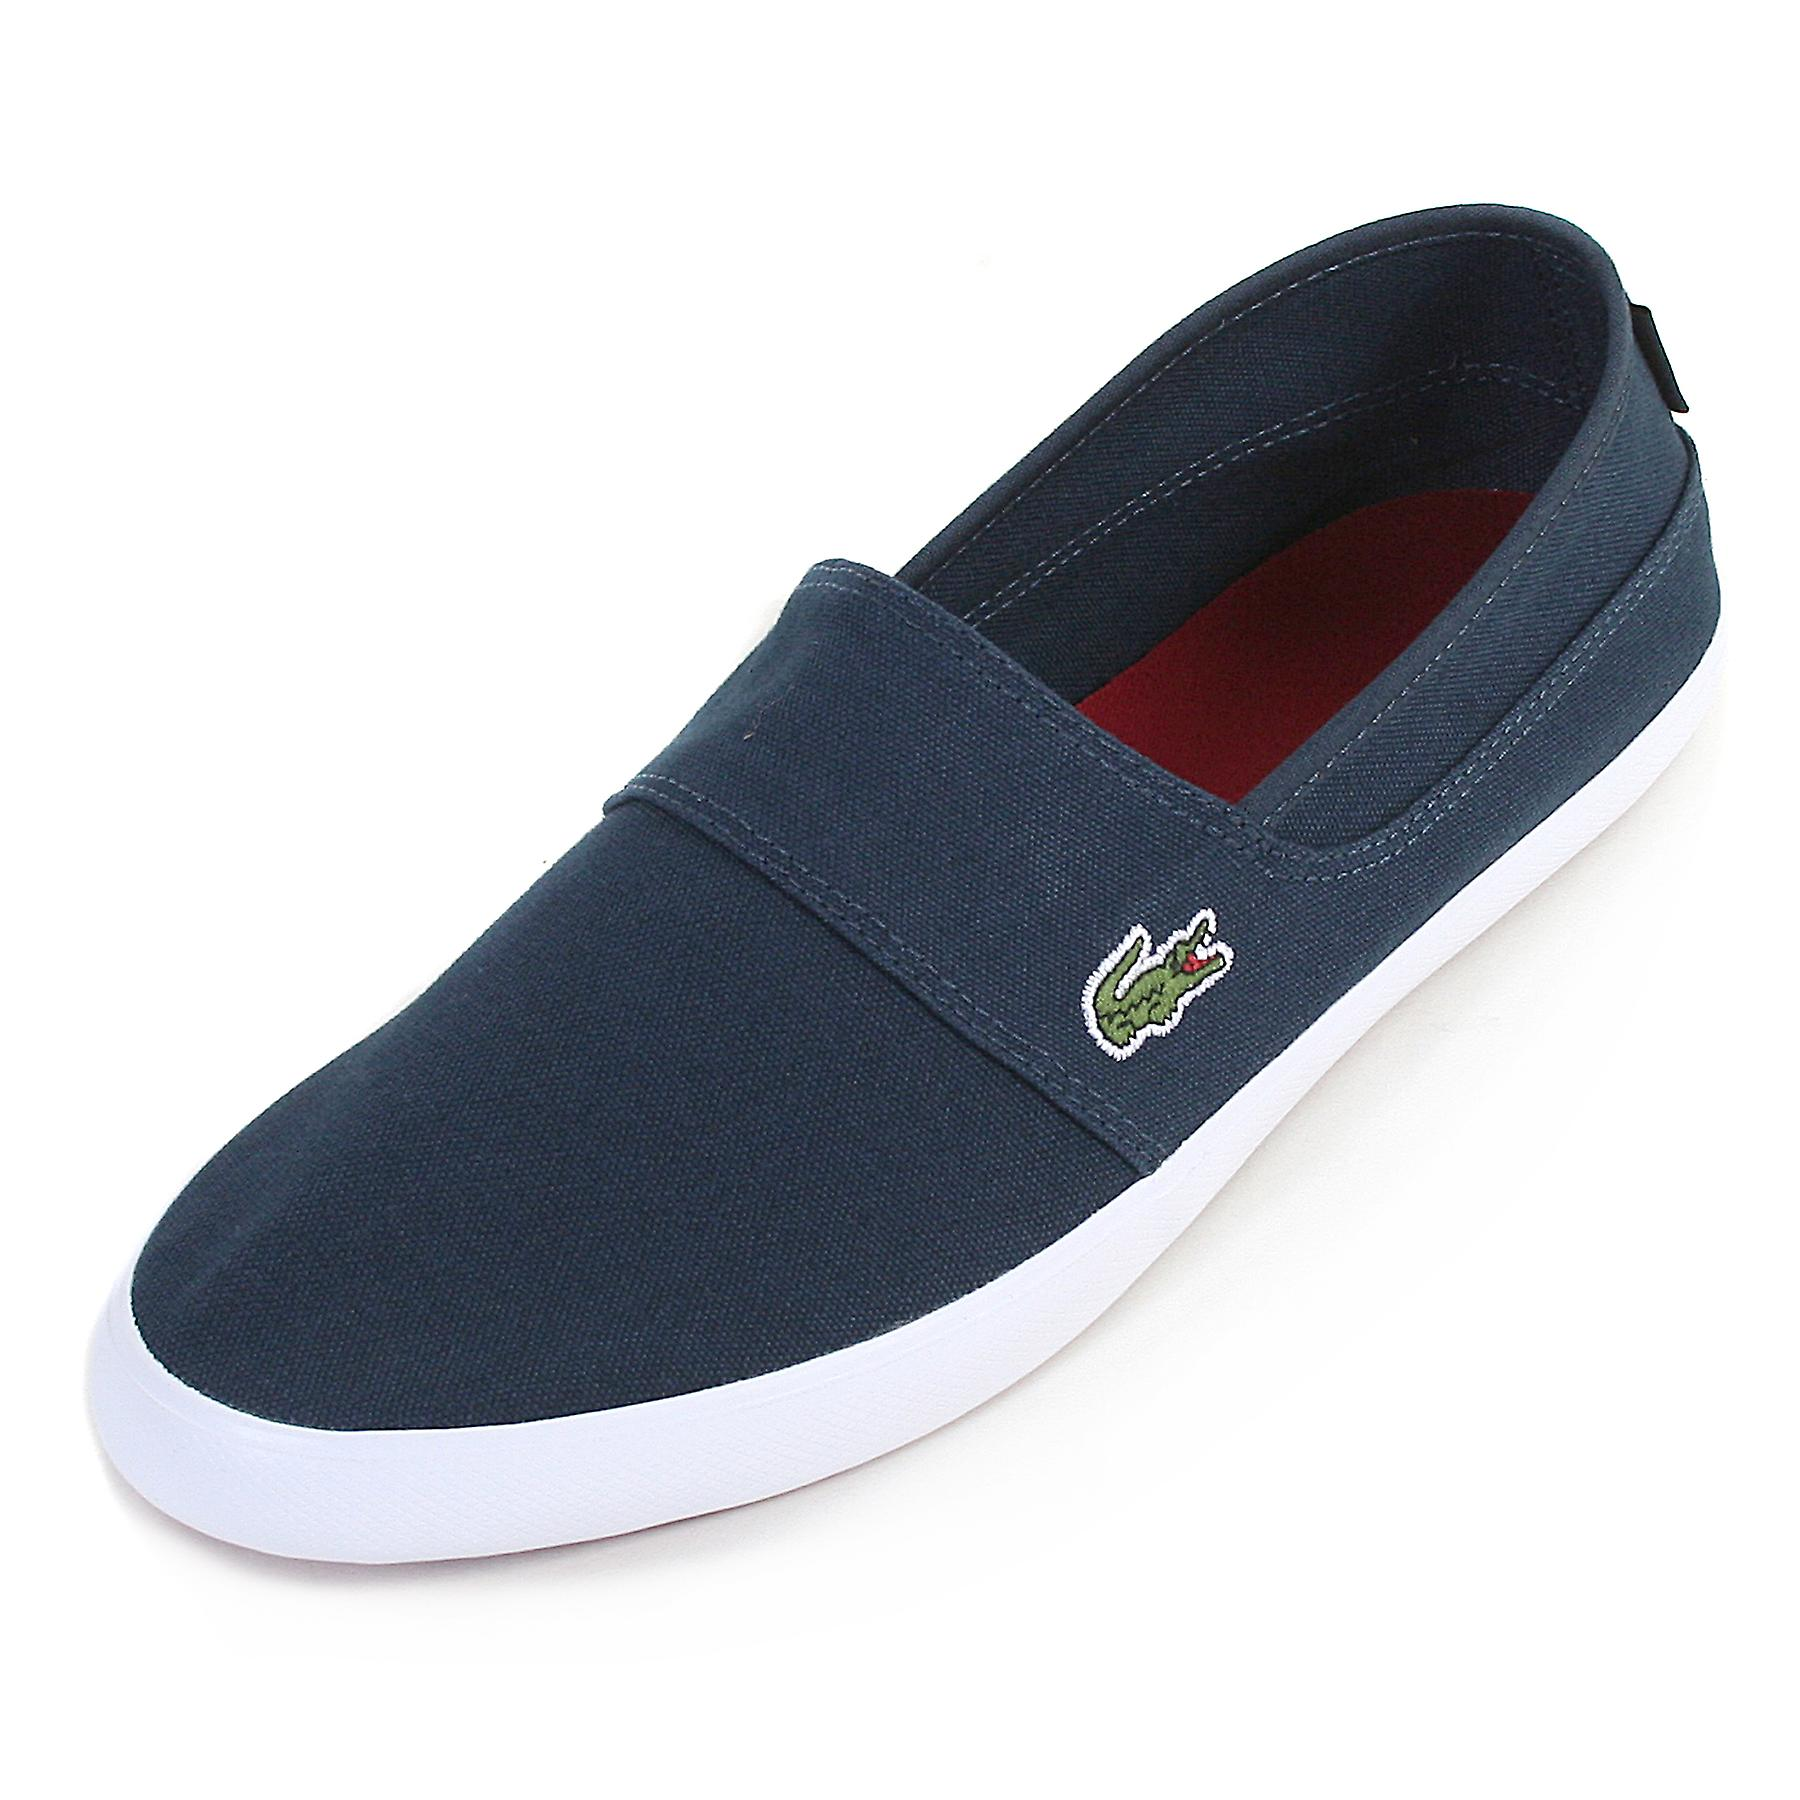 9bac1370fc4 Lacoste Men s Marice BL 2 Canvas Slip On Espadrille Navy